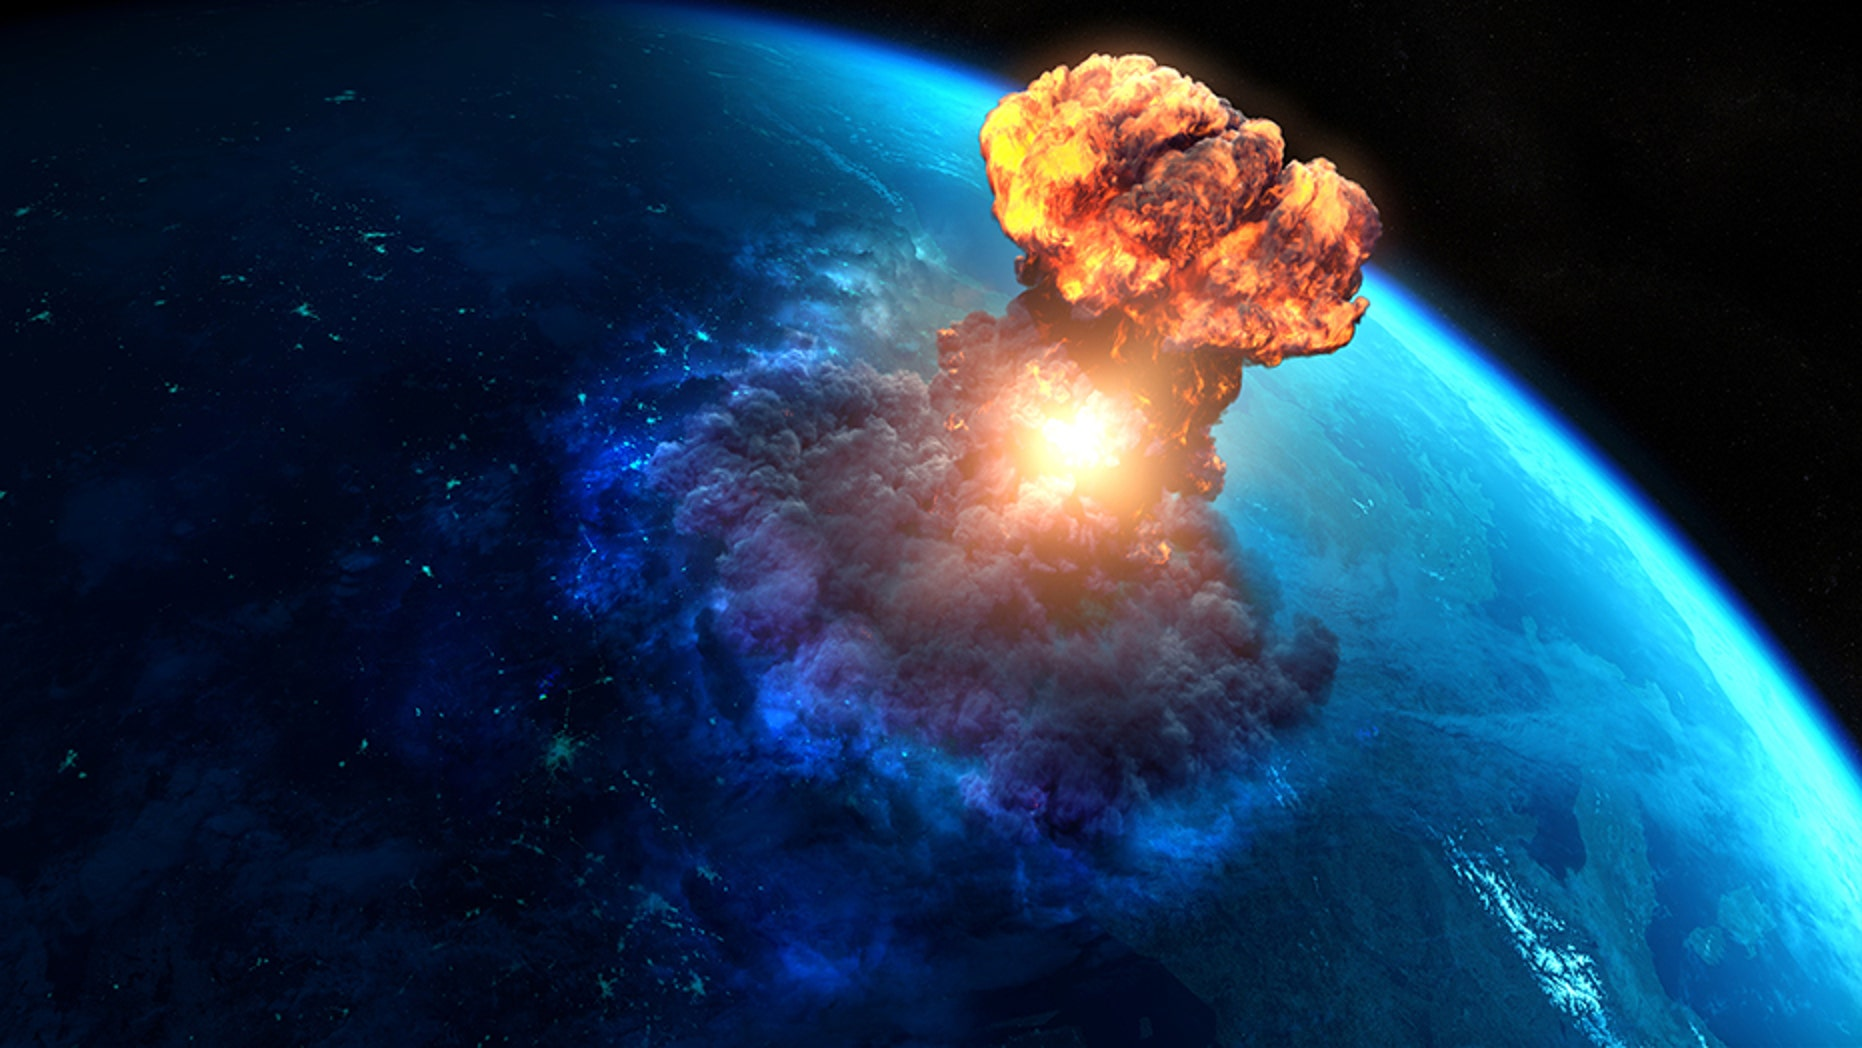 A leading security think tank is warning that as soon as 2040, artificial intelligence could encourage nations to take apocalyptic risks with their nuclear stashes.